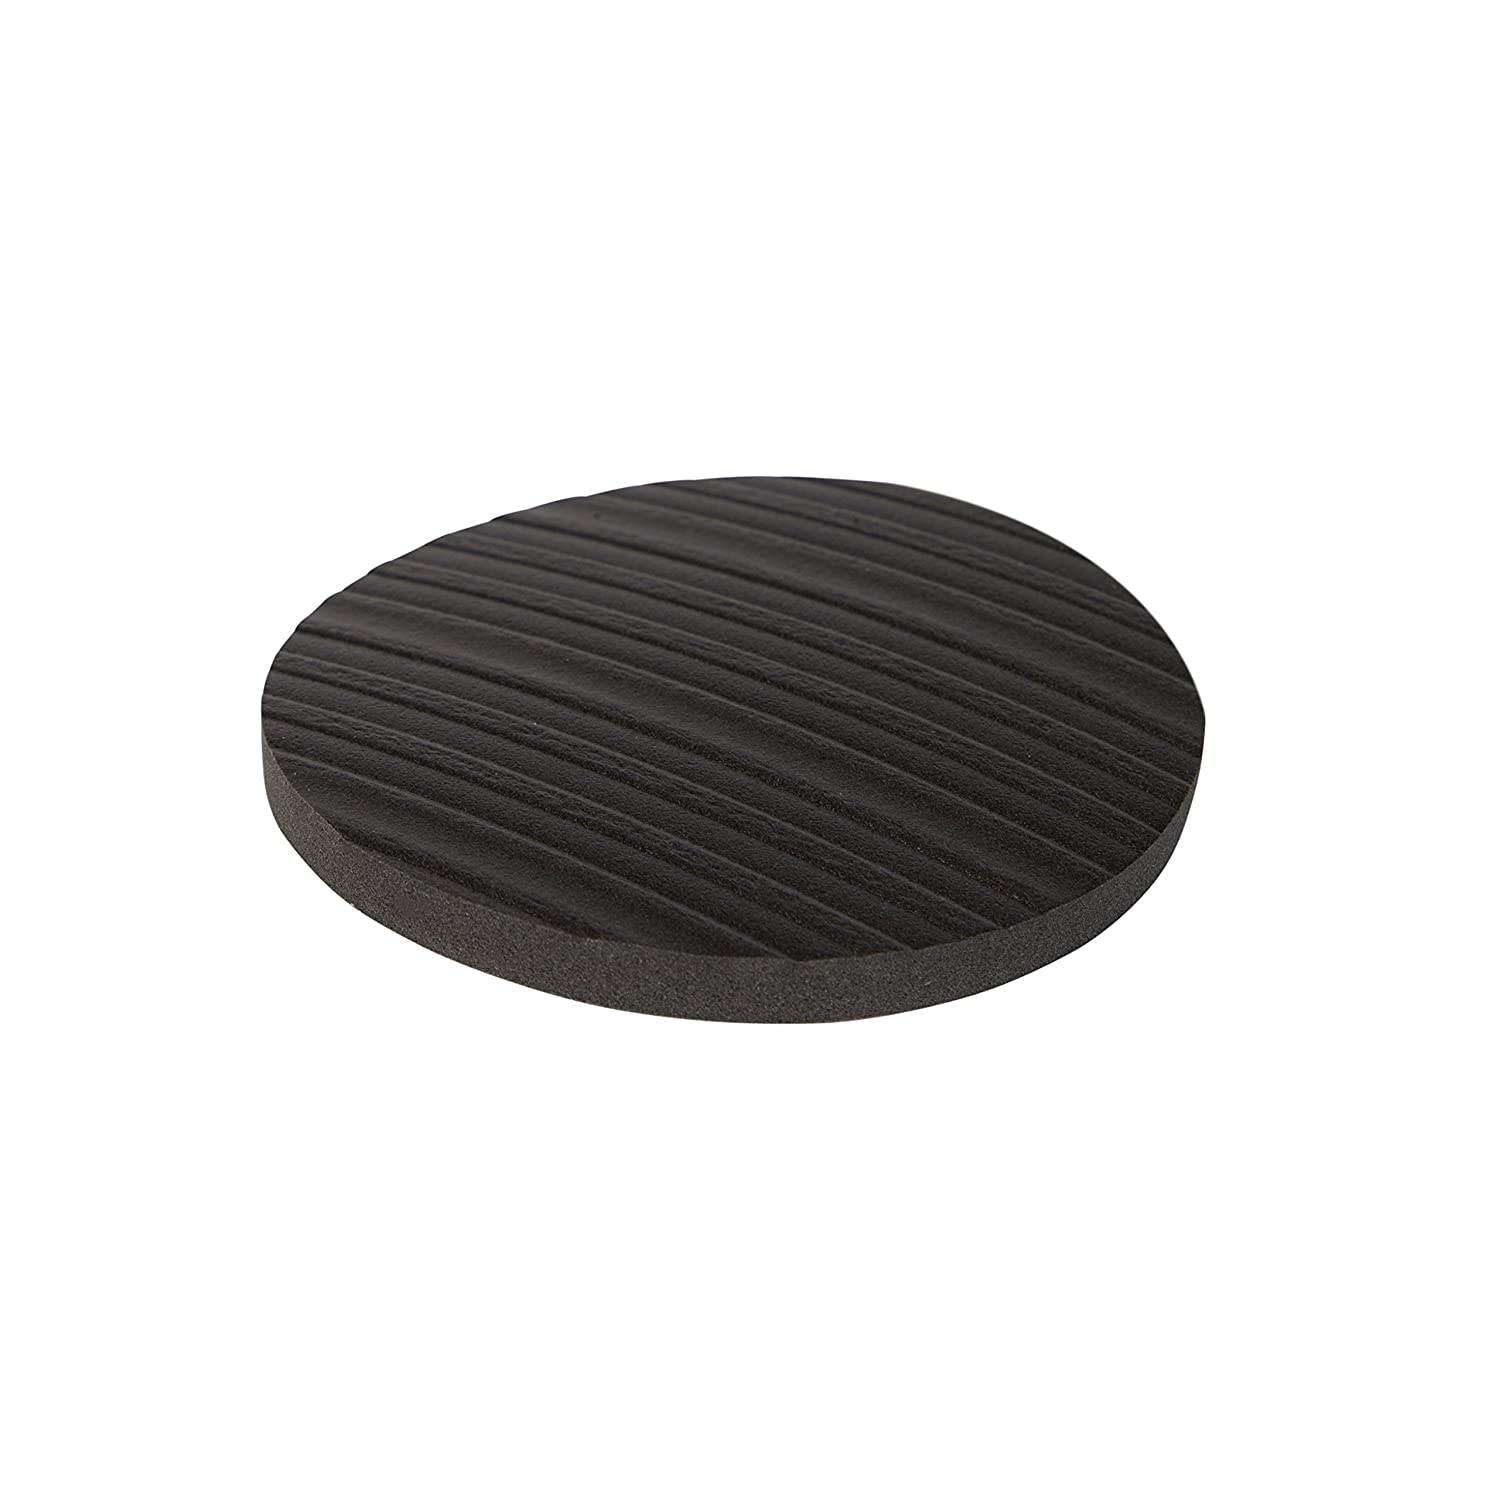 Stay! Furniture Pads, Round Furniture Grippers, Gripper Pads, Protect Your Floor | Works on Hardwood Floors and Carpet, Anti-Slip | Round Black, Set of 4 (4 inch)